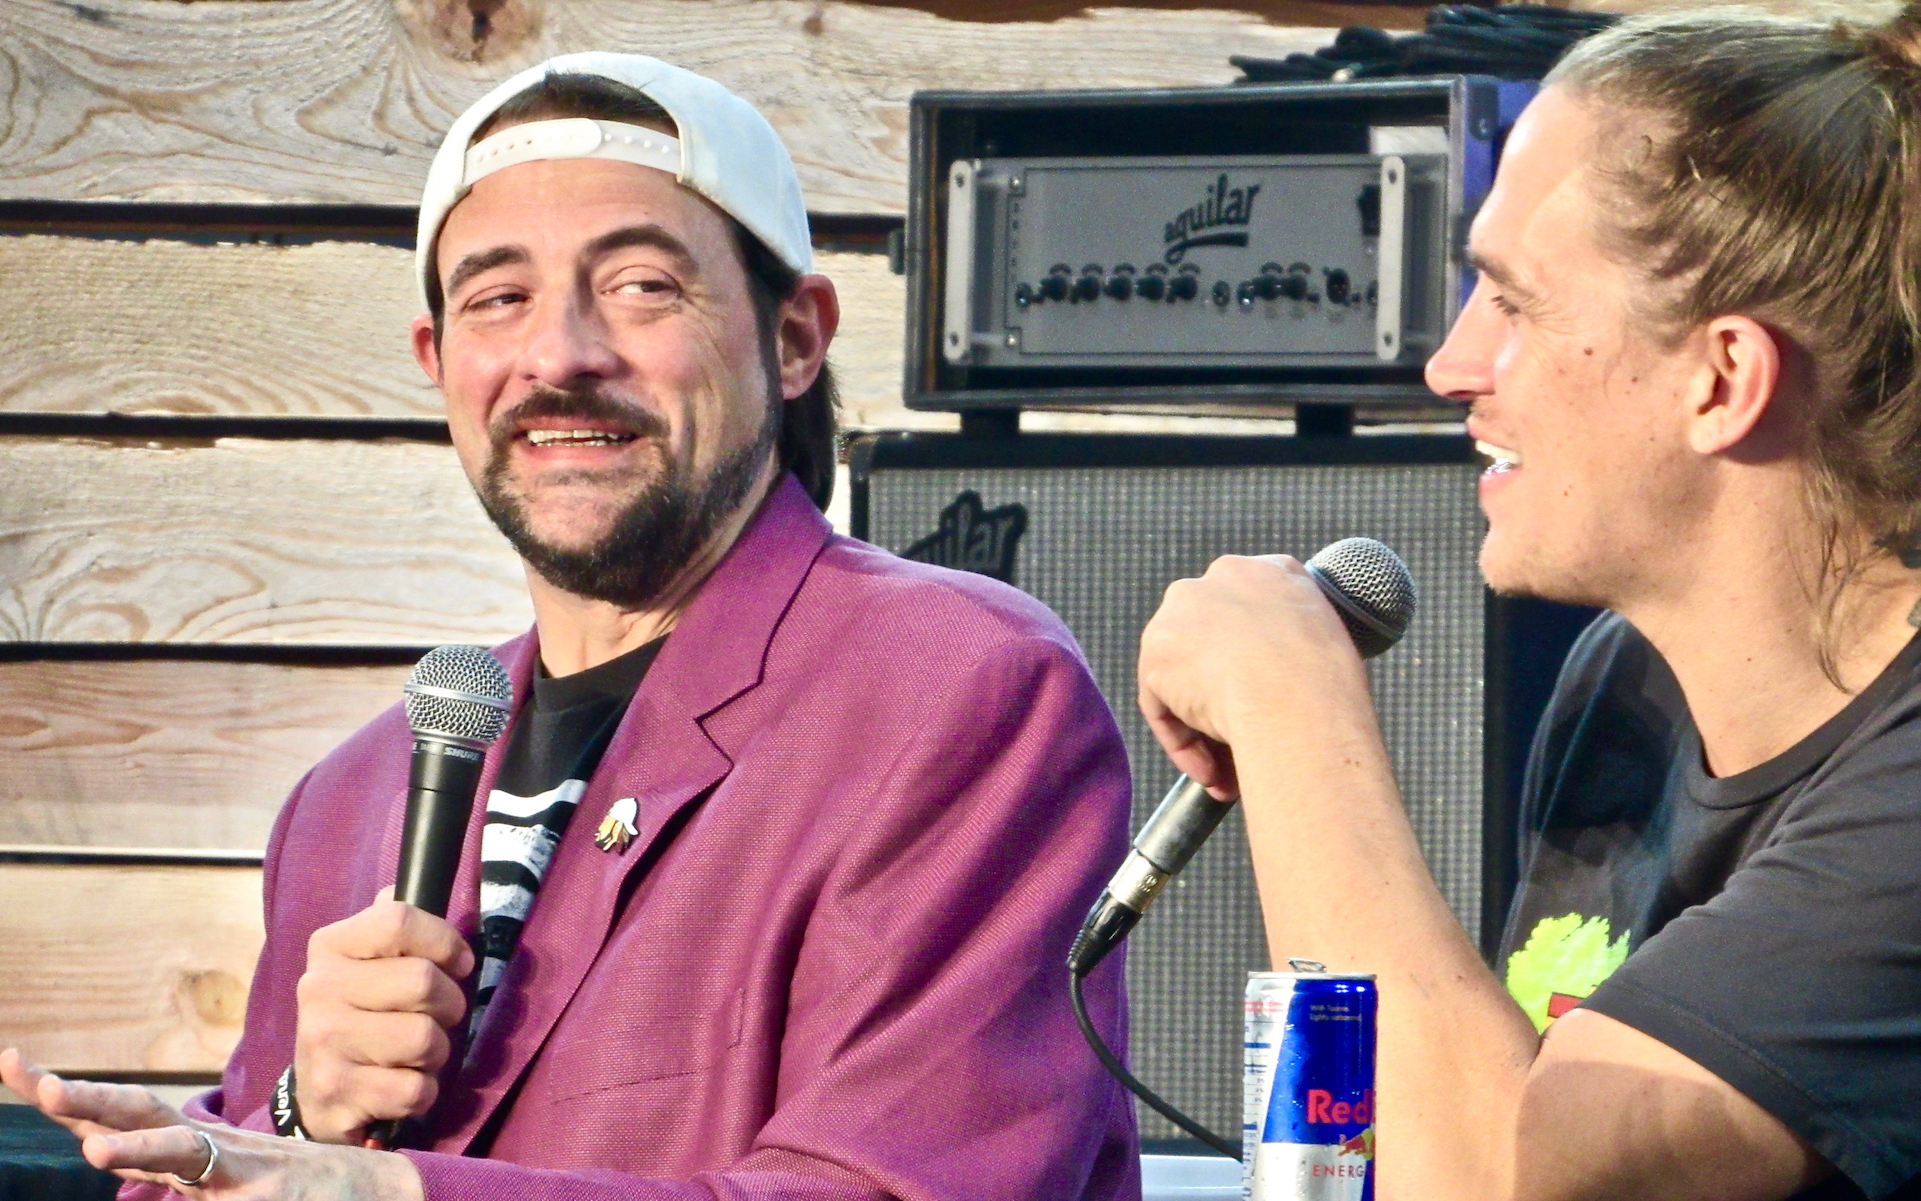 Director Kevin Smith and actor Jason Mewes record an episode of 'Jay and Silent Bog Get Old' Saturday. (David Downs/Leafly)